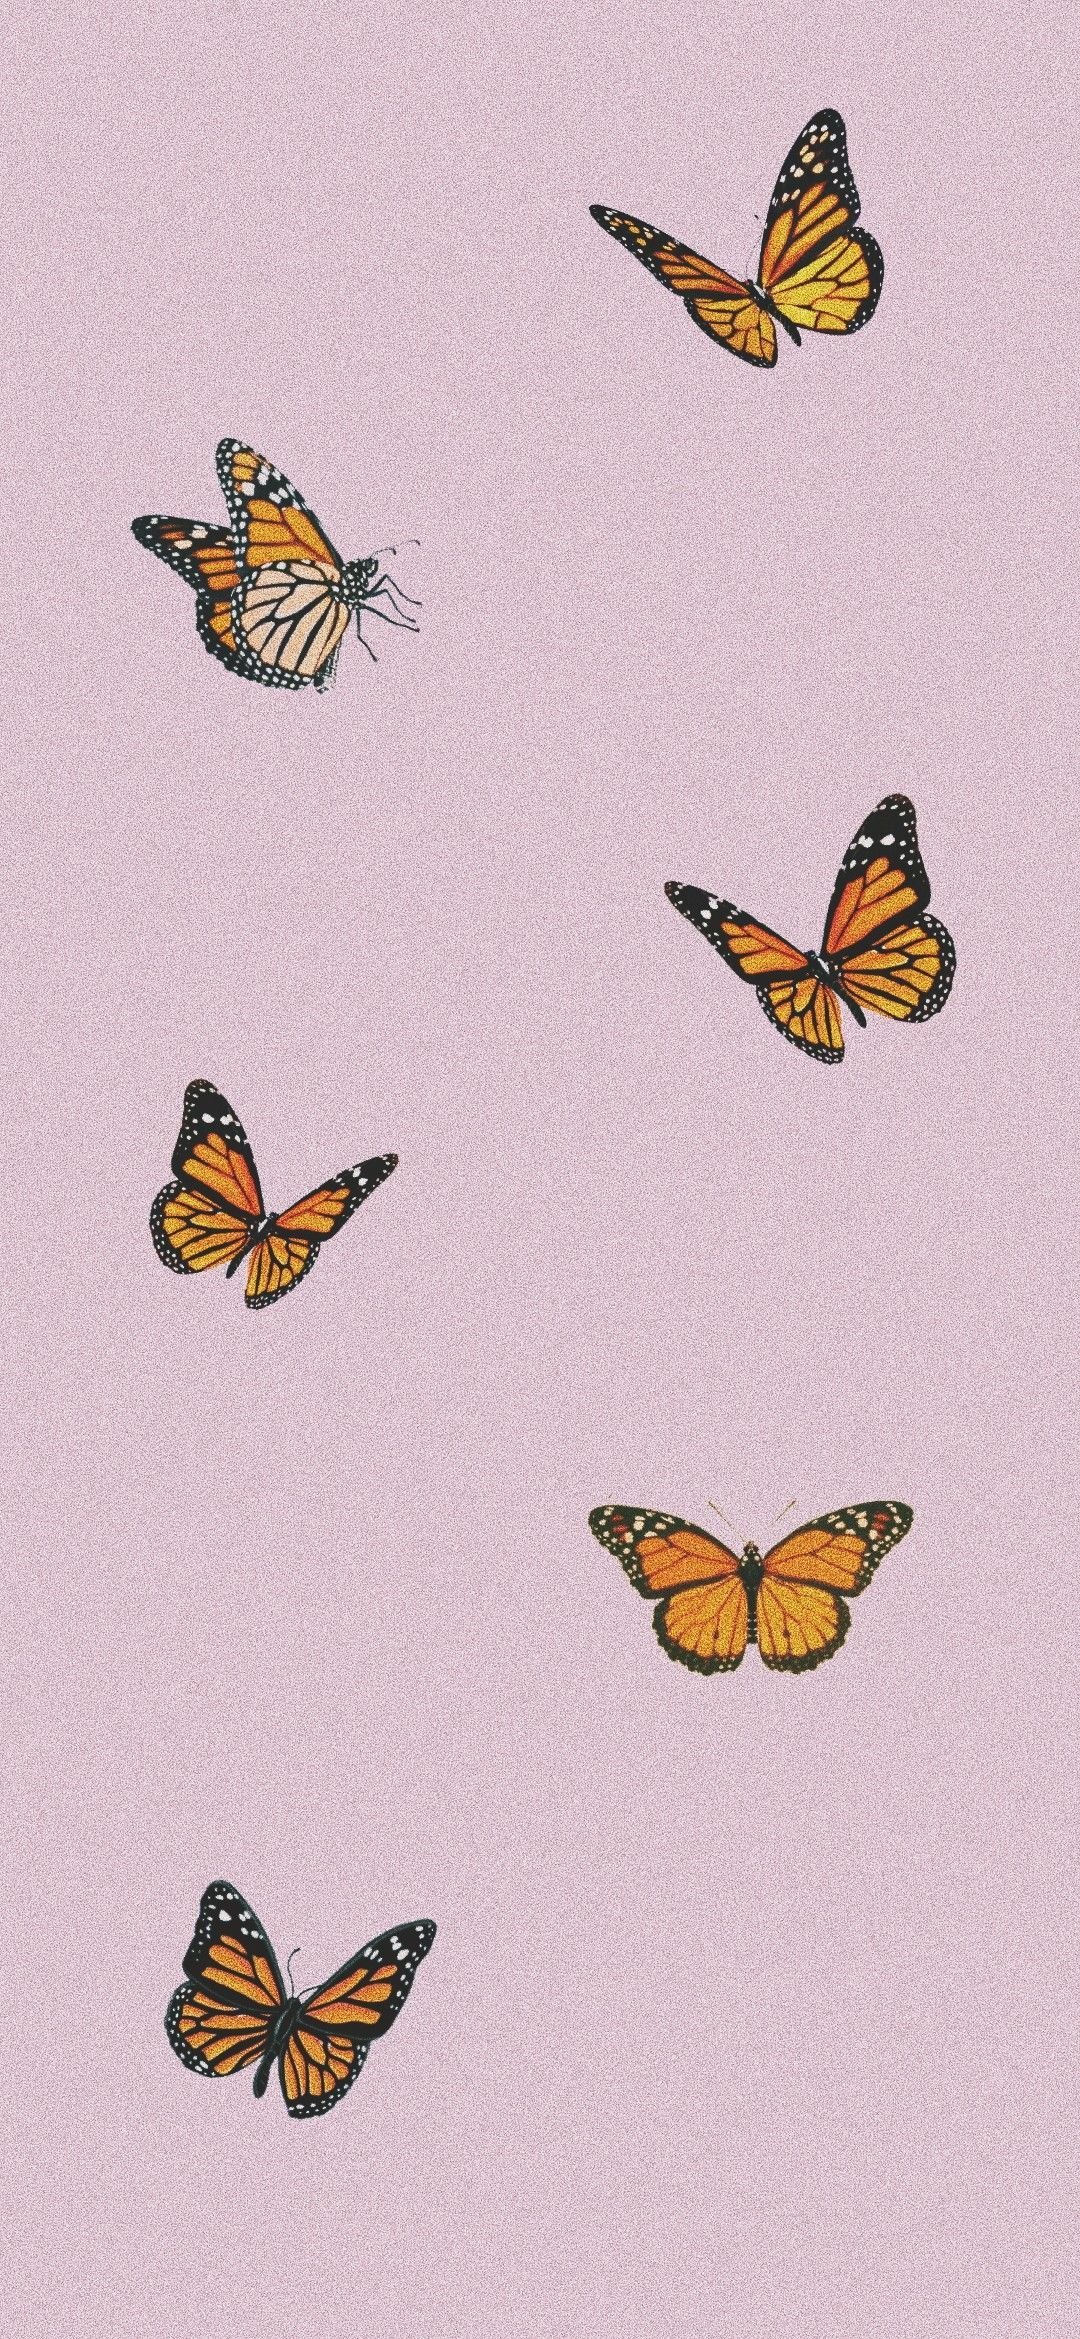 Butterfly Wallpaper Iphone X Big Pink Iphonebackgrounds In 2020